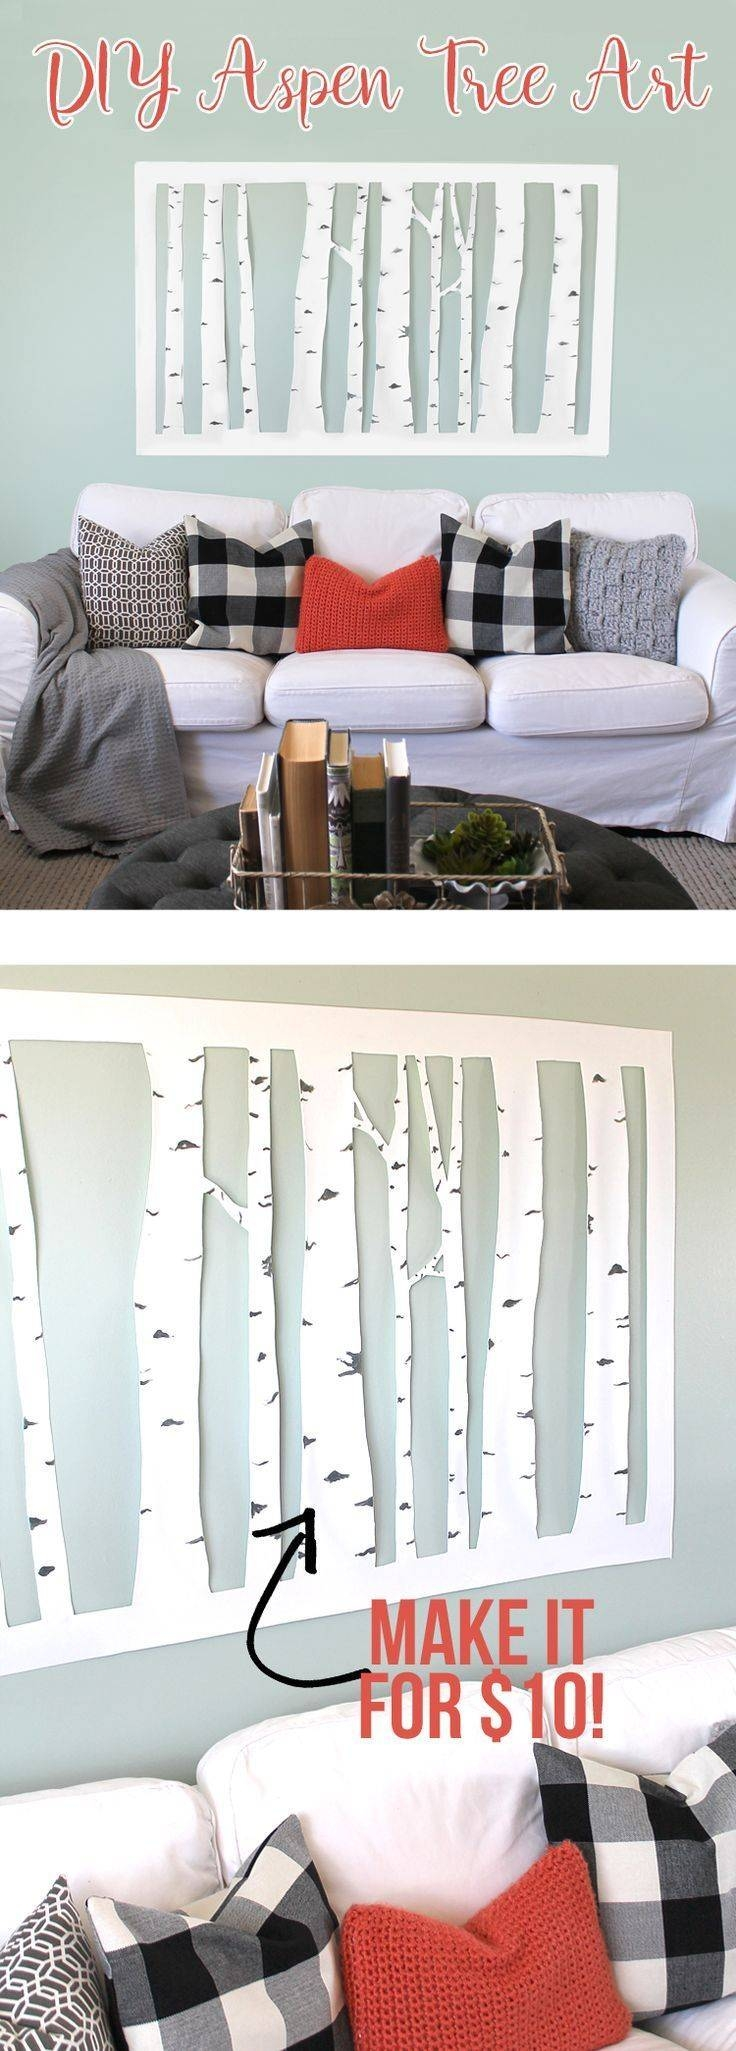 25+ Unique Cheap Wall Art Ideas On Pinterest | Easy Wall Art Pertaining To Best And Newest Large Inexpensive Wall Art (View 1 of 20)